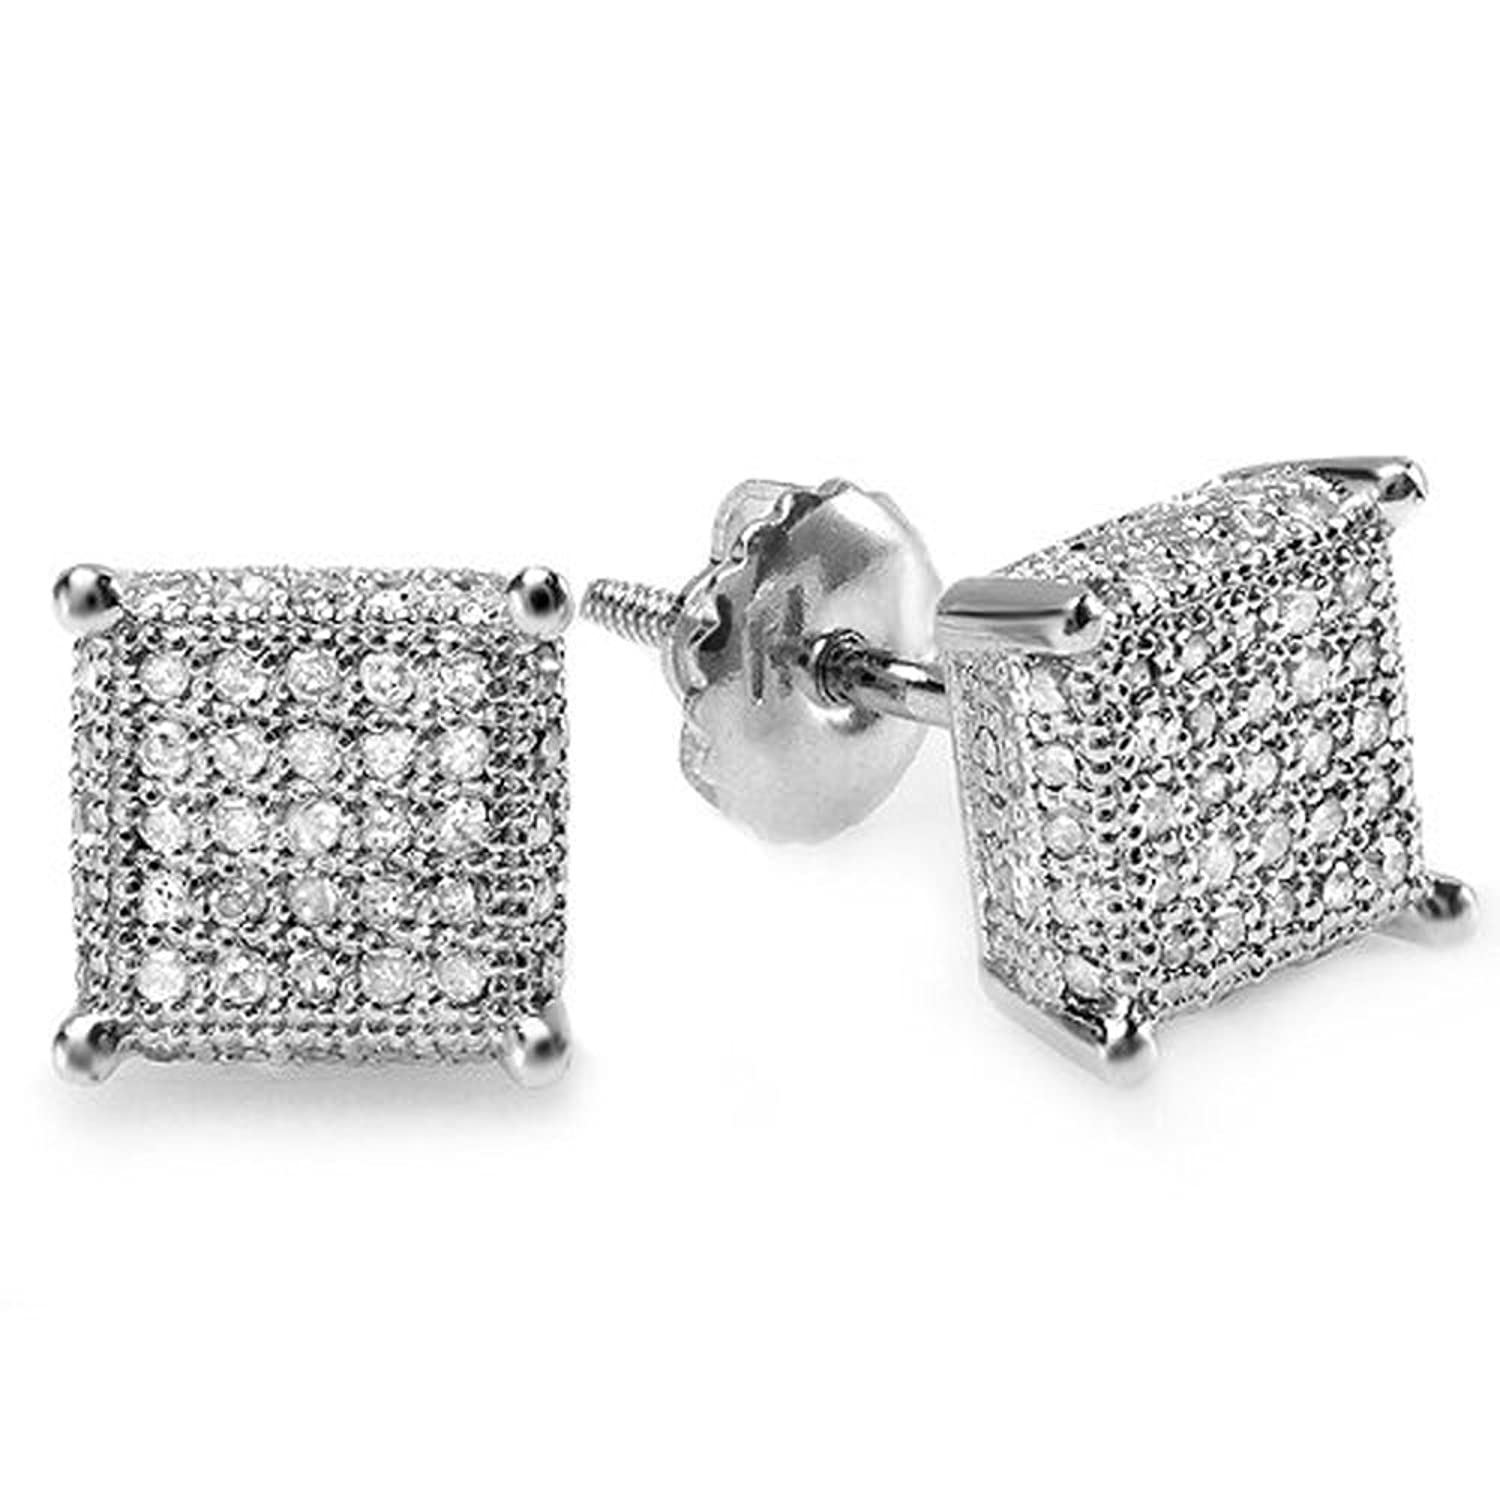 solitaire white gold johnlewis diamond rsp at main pdp brilliant round online stud buymogul mogul earrings